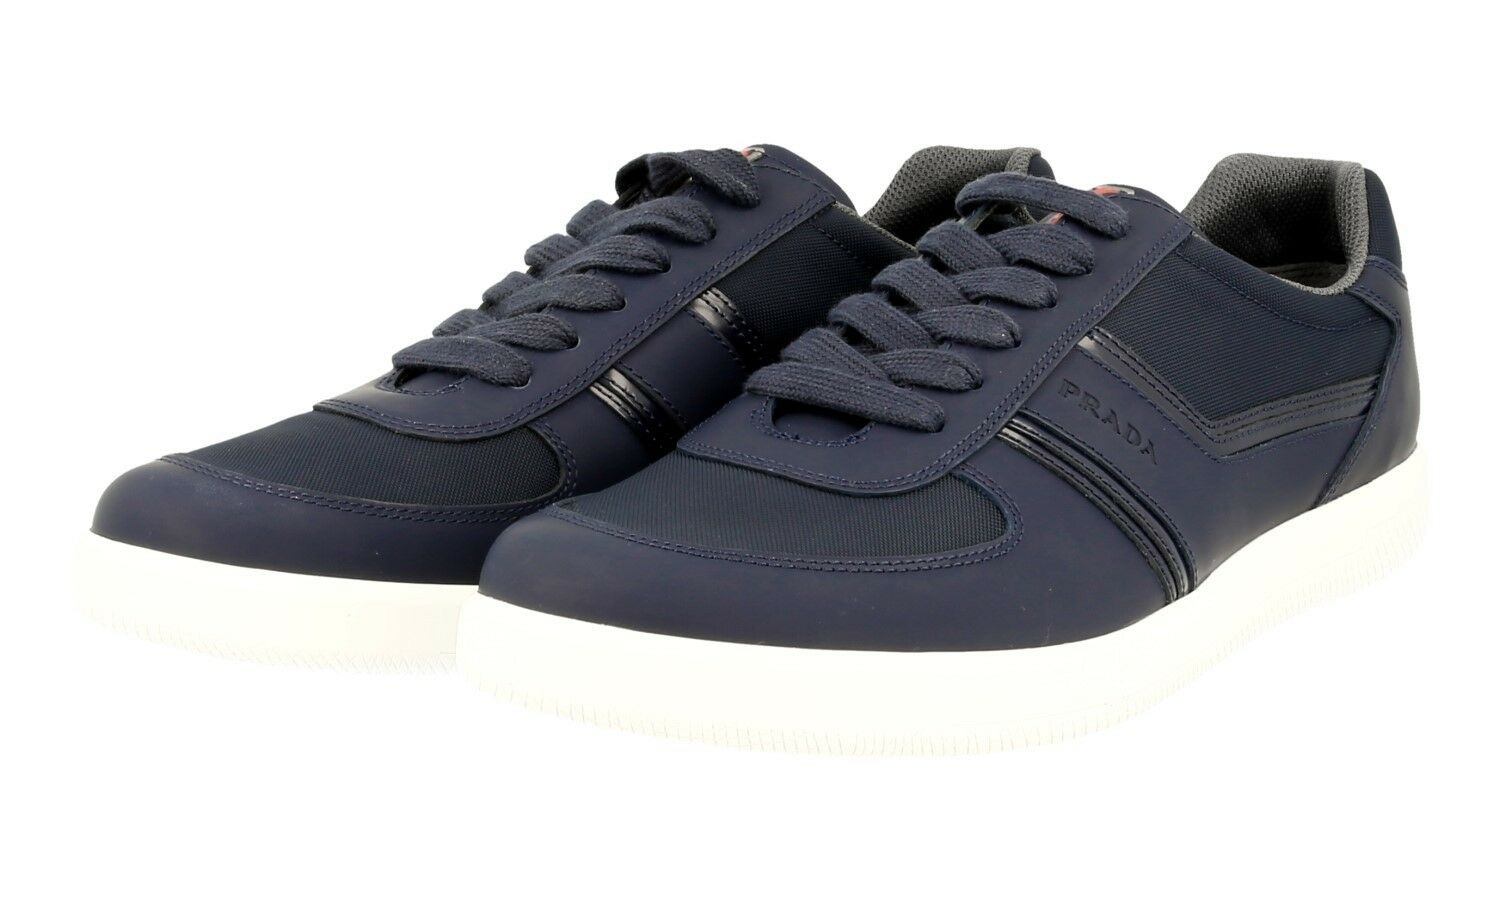 51e73f3843a11 AUTH LUXURY PRADA SNEAKERS SHOES 4E3026 BALTIC blueE NEW 9 43 43